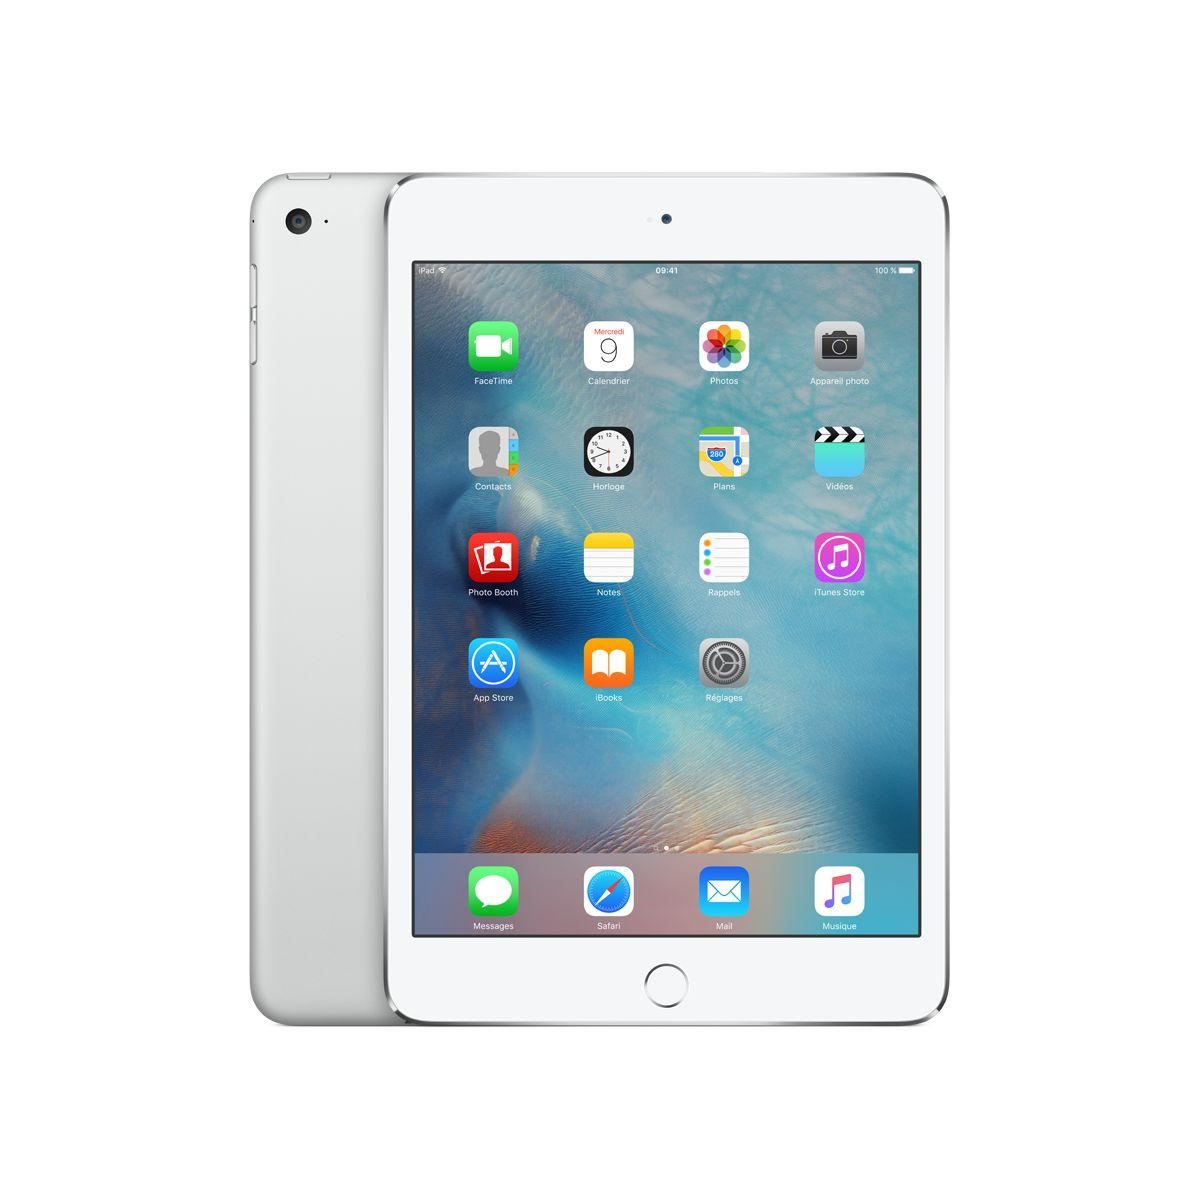 Apple ipad mini 4 128go argent (photo)